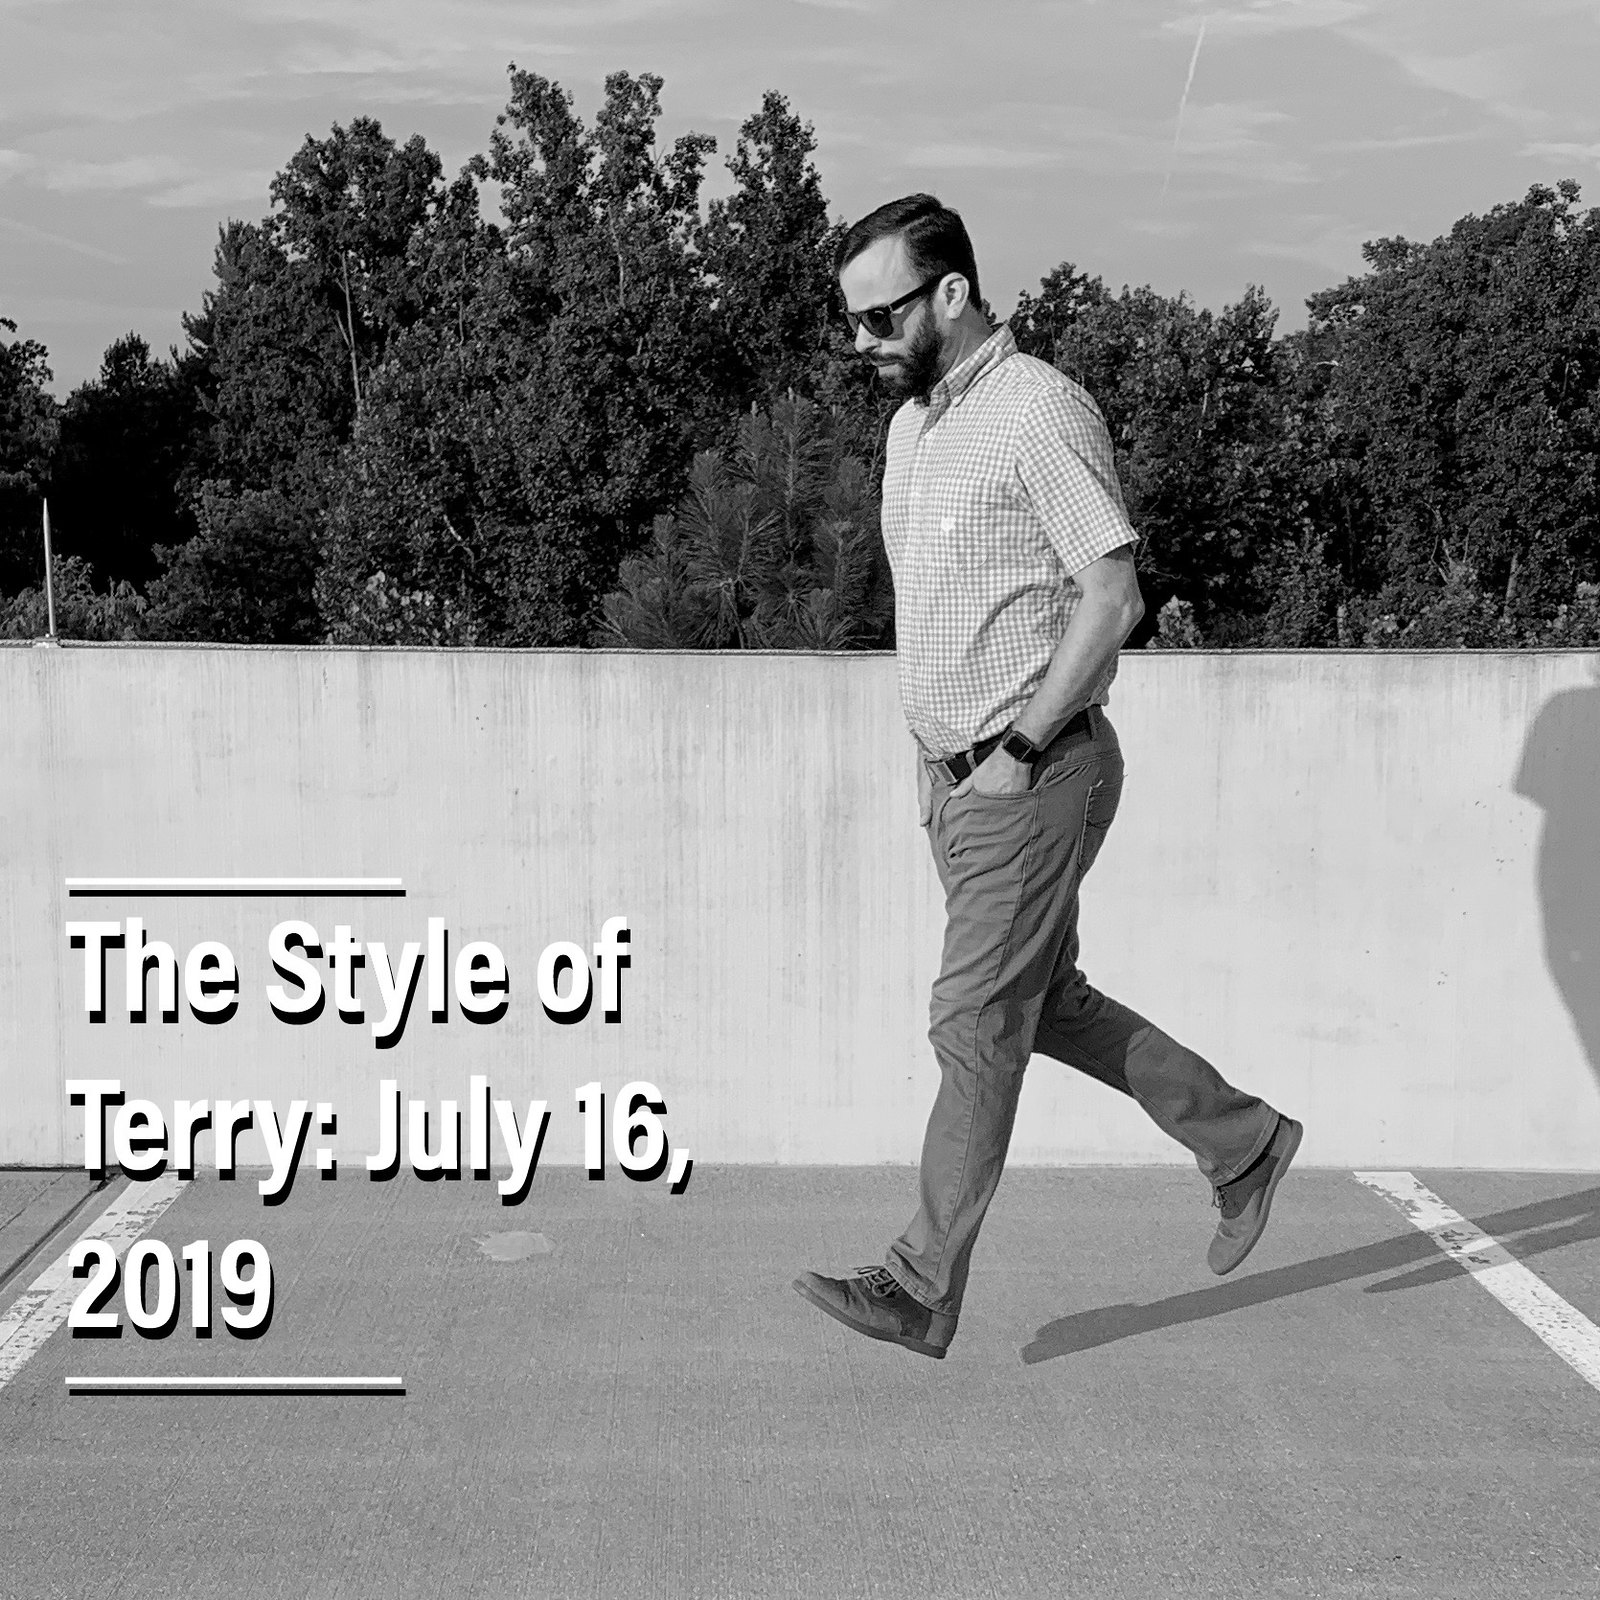 The Style of Terry: 7.16.19